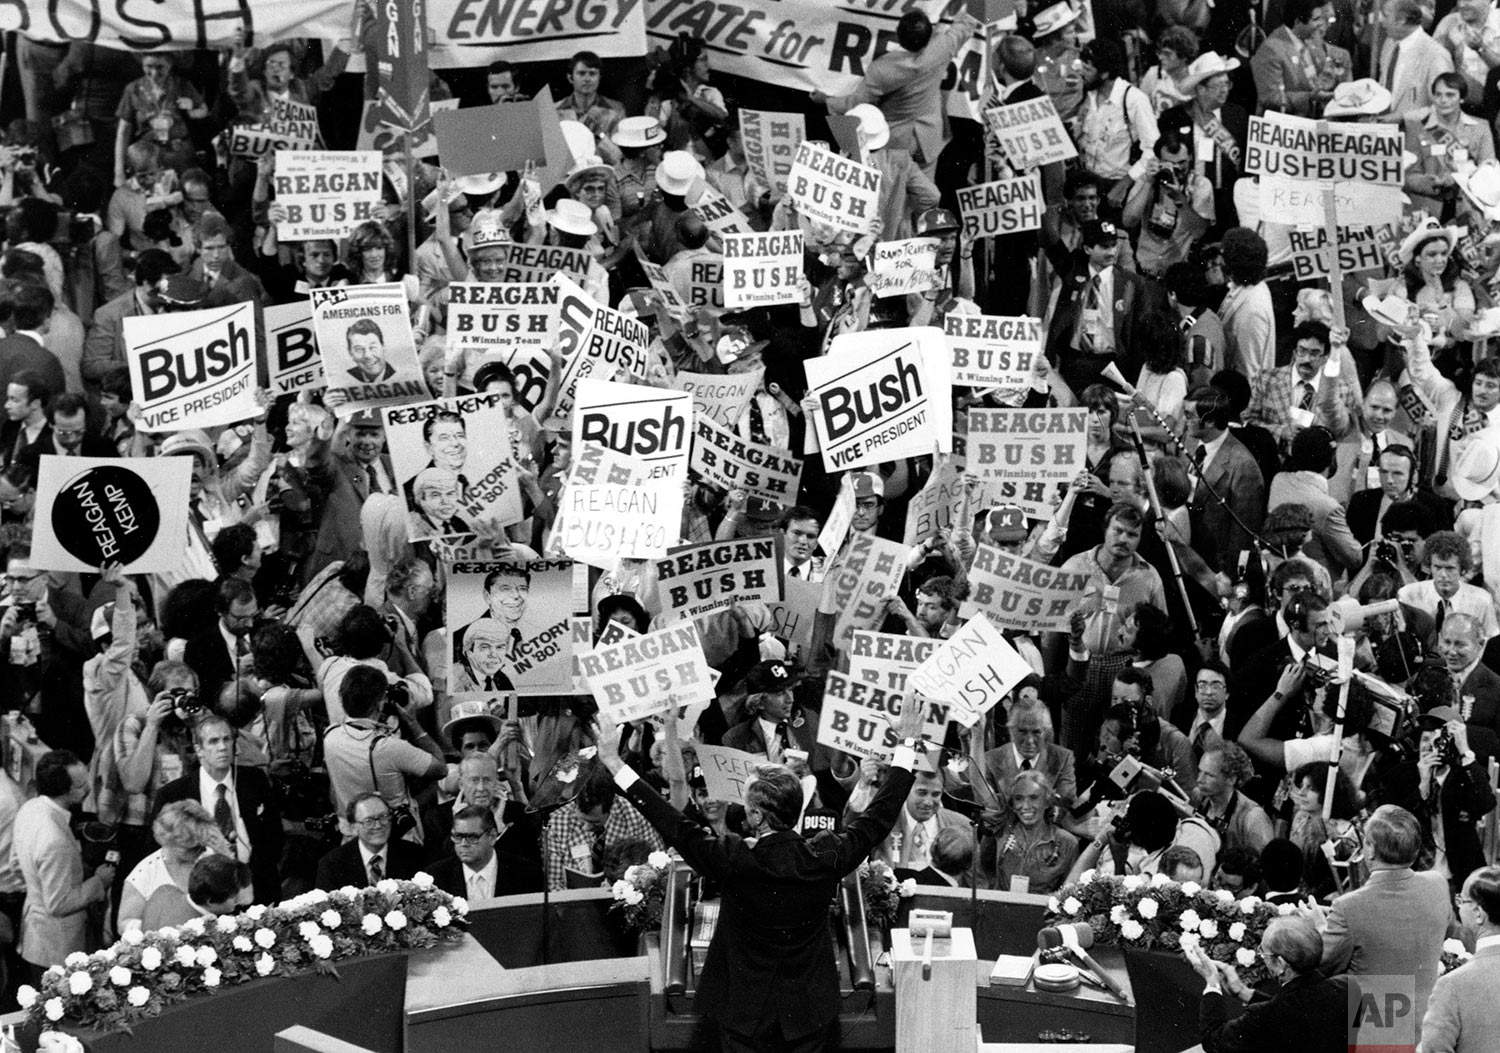 George H.W. Bush, center foreground, acknowledges the crowd before speaking to the Republican Convention delegates on July 16, 1980, in Detroit. (AP Photo)